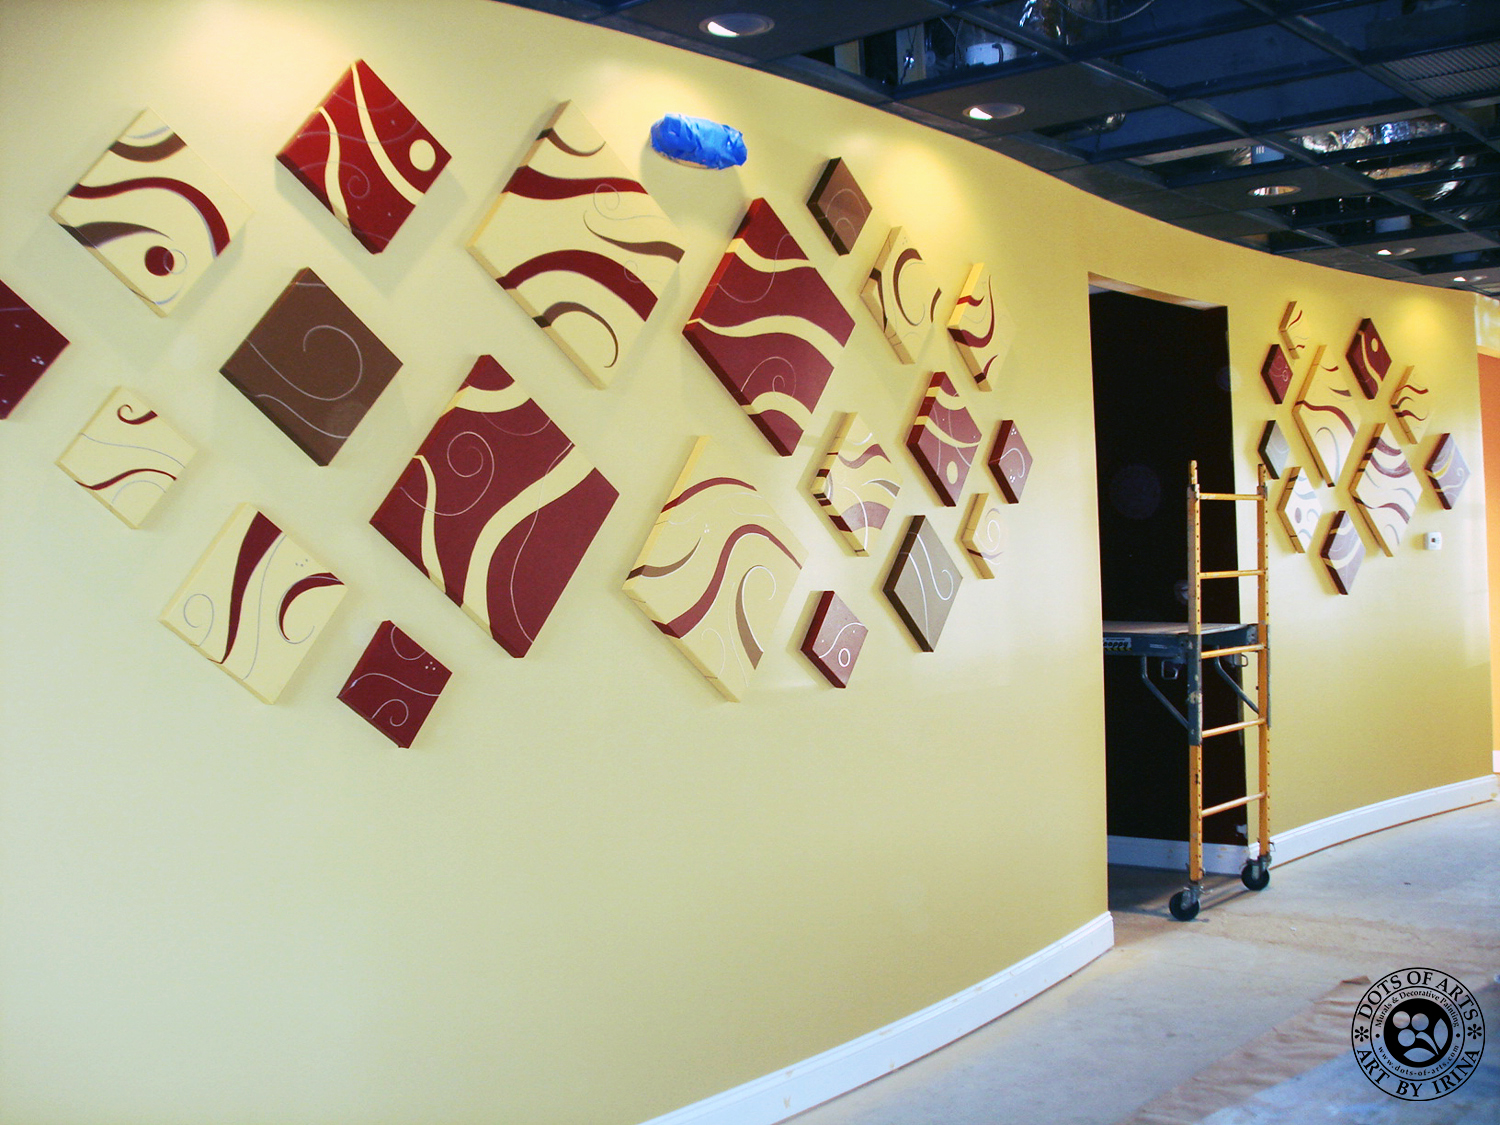 murals-nj-commercial-wall-decor-canvases-decorative-painting-restaurant-custom-color-dots-of-arts-08.jpg